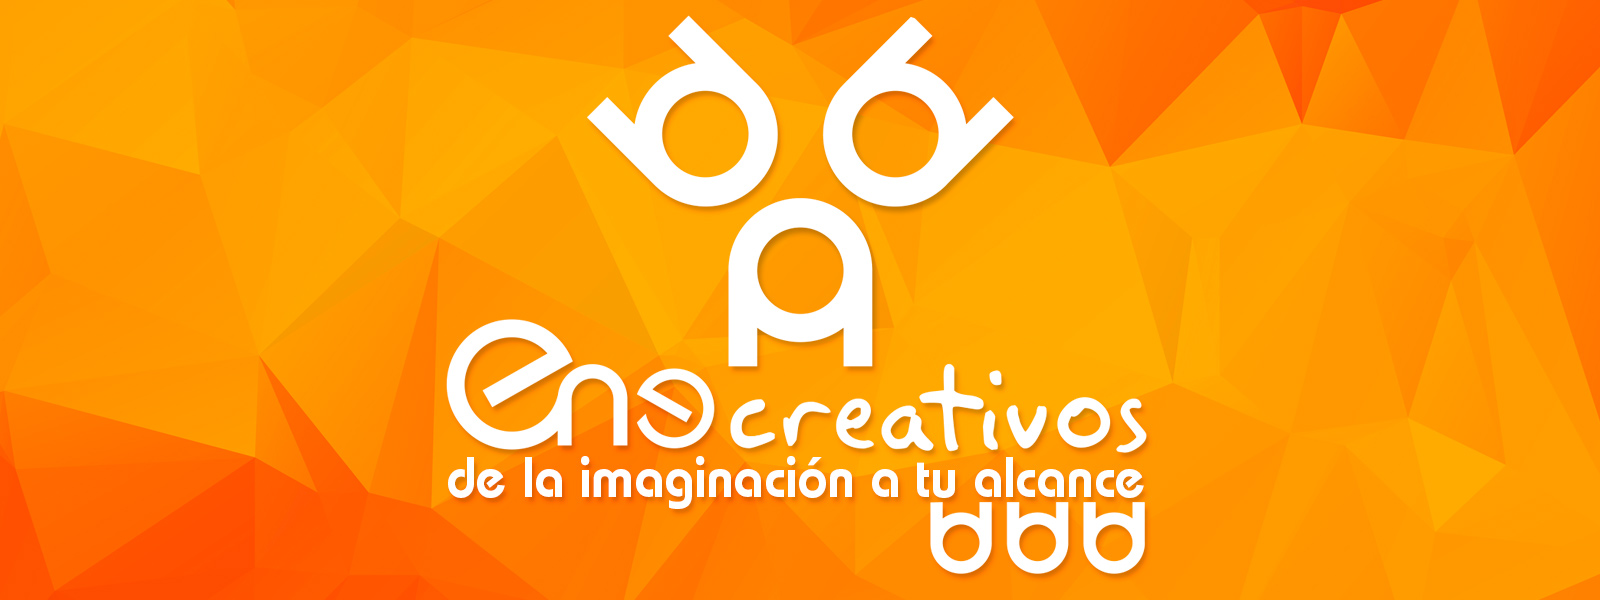 Ene Creativos vector